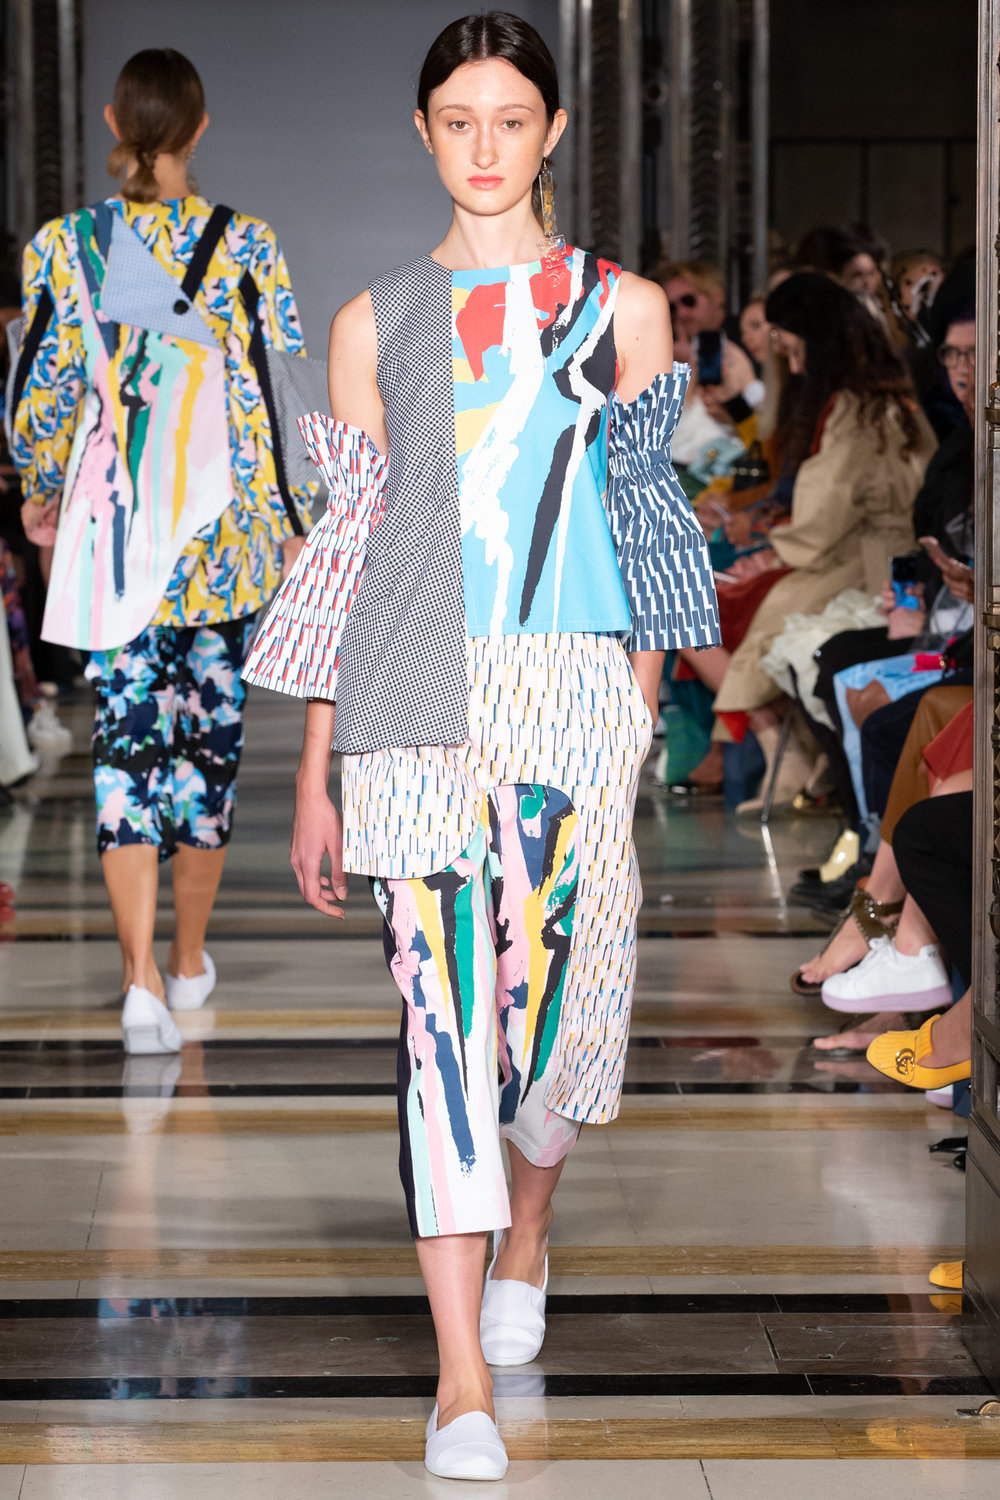 cassey gan - Graffiti prints in every shade, from sky blue and jade green to powder pink and yellow, were splashed with bold black strokes that recalled an almost-forgotten, 80s, graffiti aesthetic of my childhood t-shirts and dance-wear.Overlapping layers and elements of deconstructed shirting created a collection that screamed comfort, clashing patterns and colour - bring on those lazy, hazy, crazy days of summer!Photo credit: Simon Armstrong